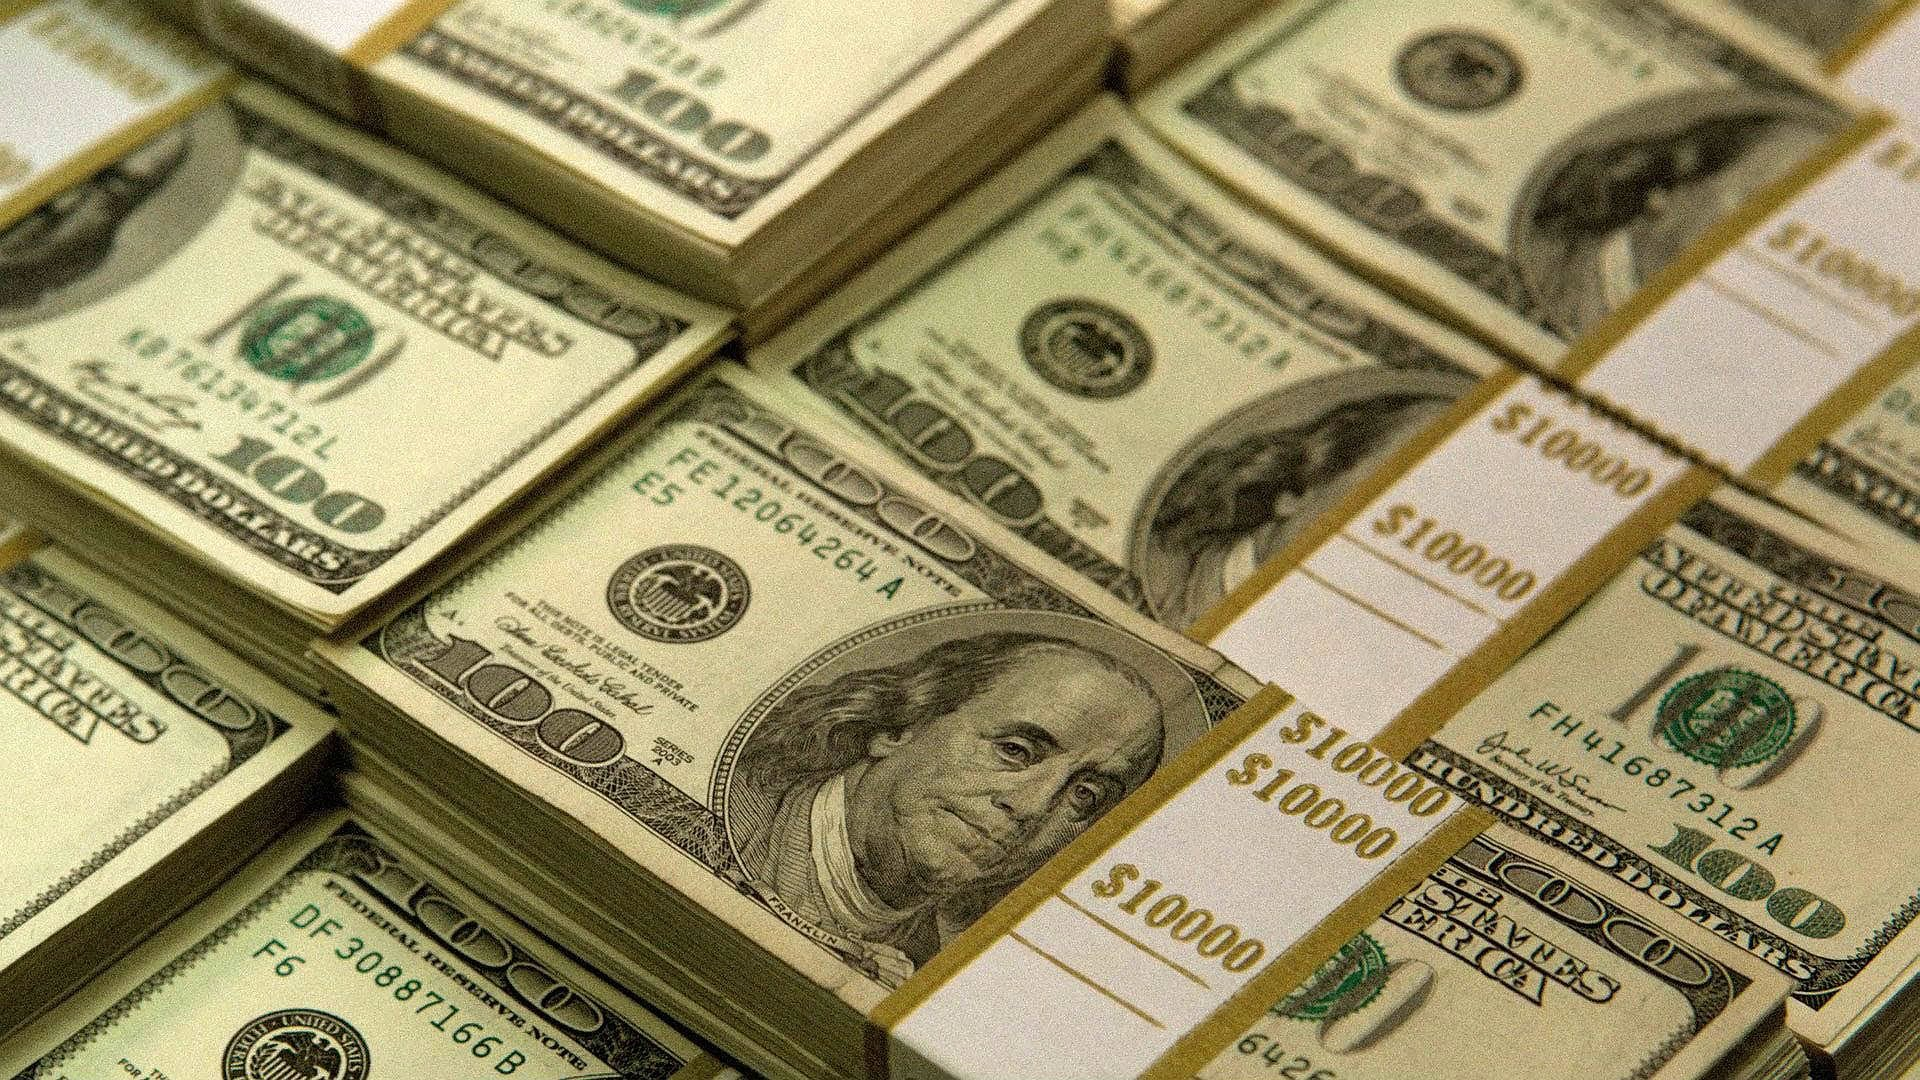 cash money backgrounds in hd bing images